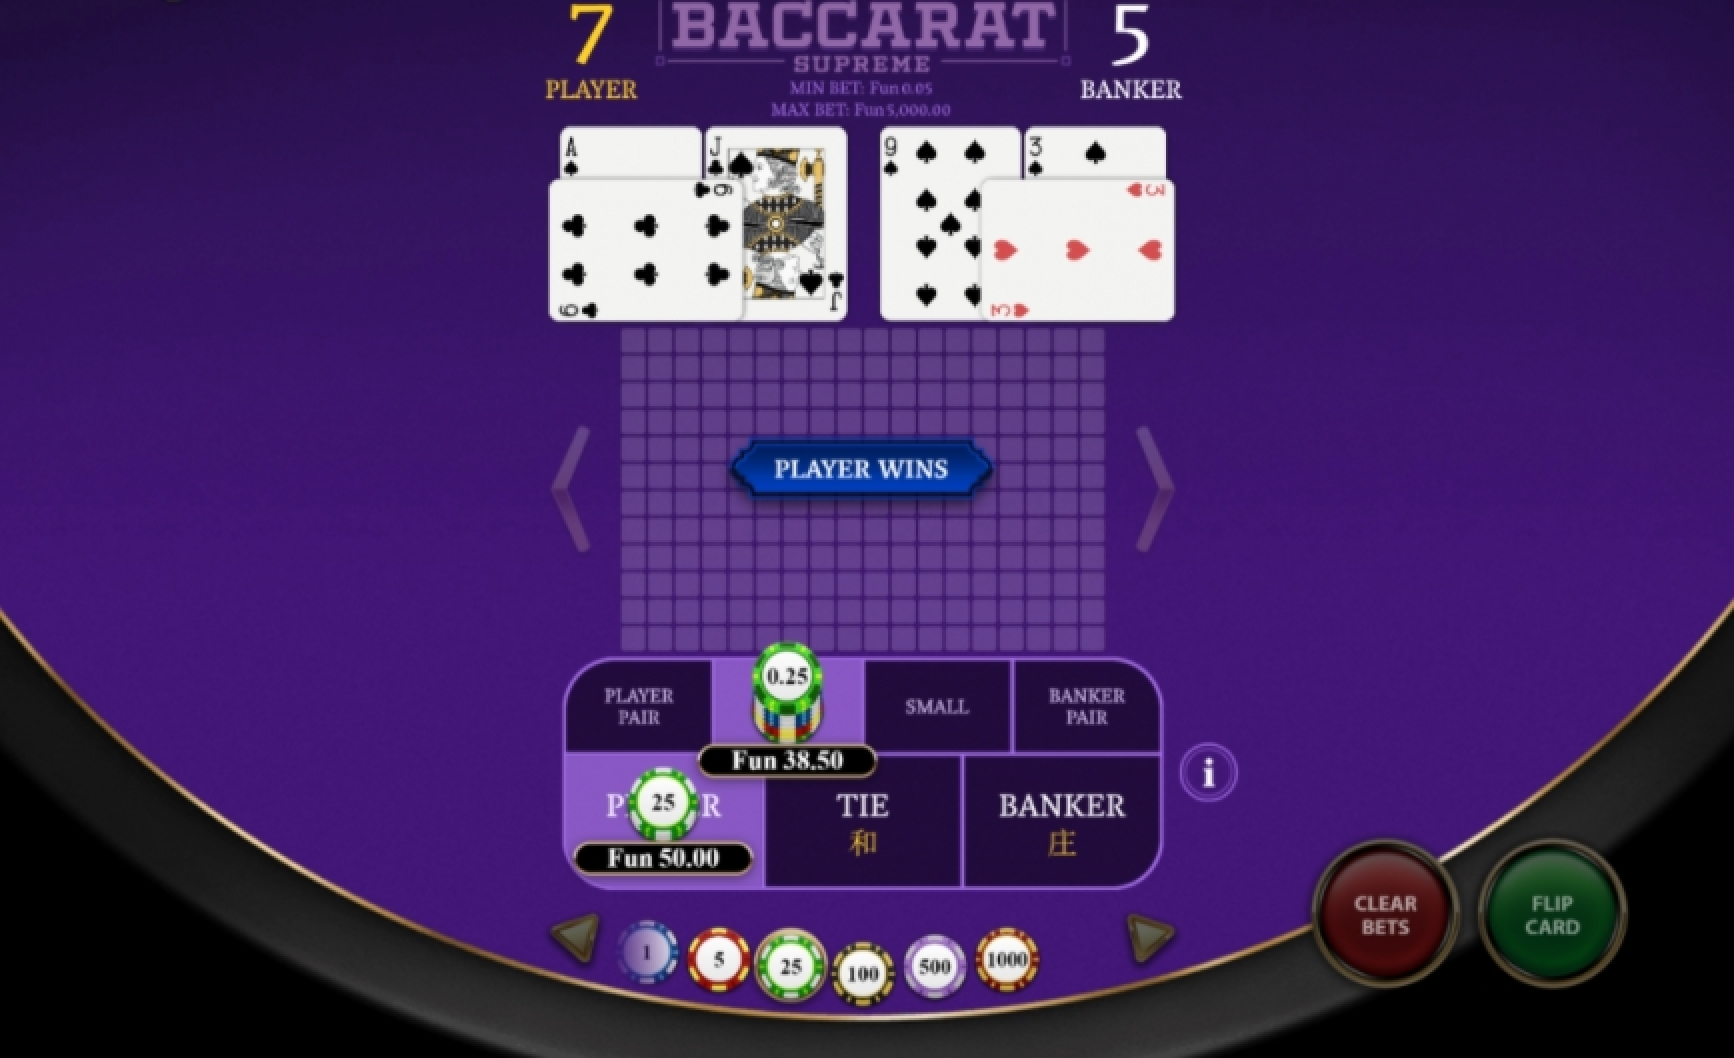 The Baccarat Supreme Online Slot Demo Game by OneTouch